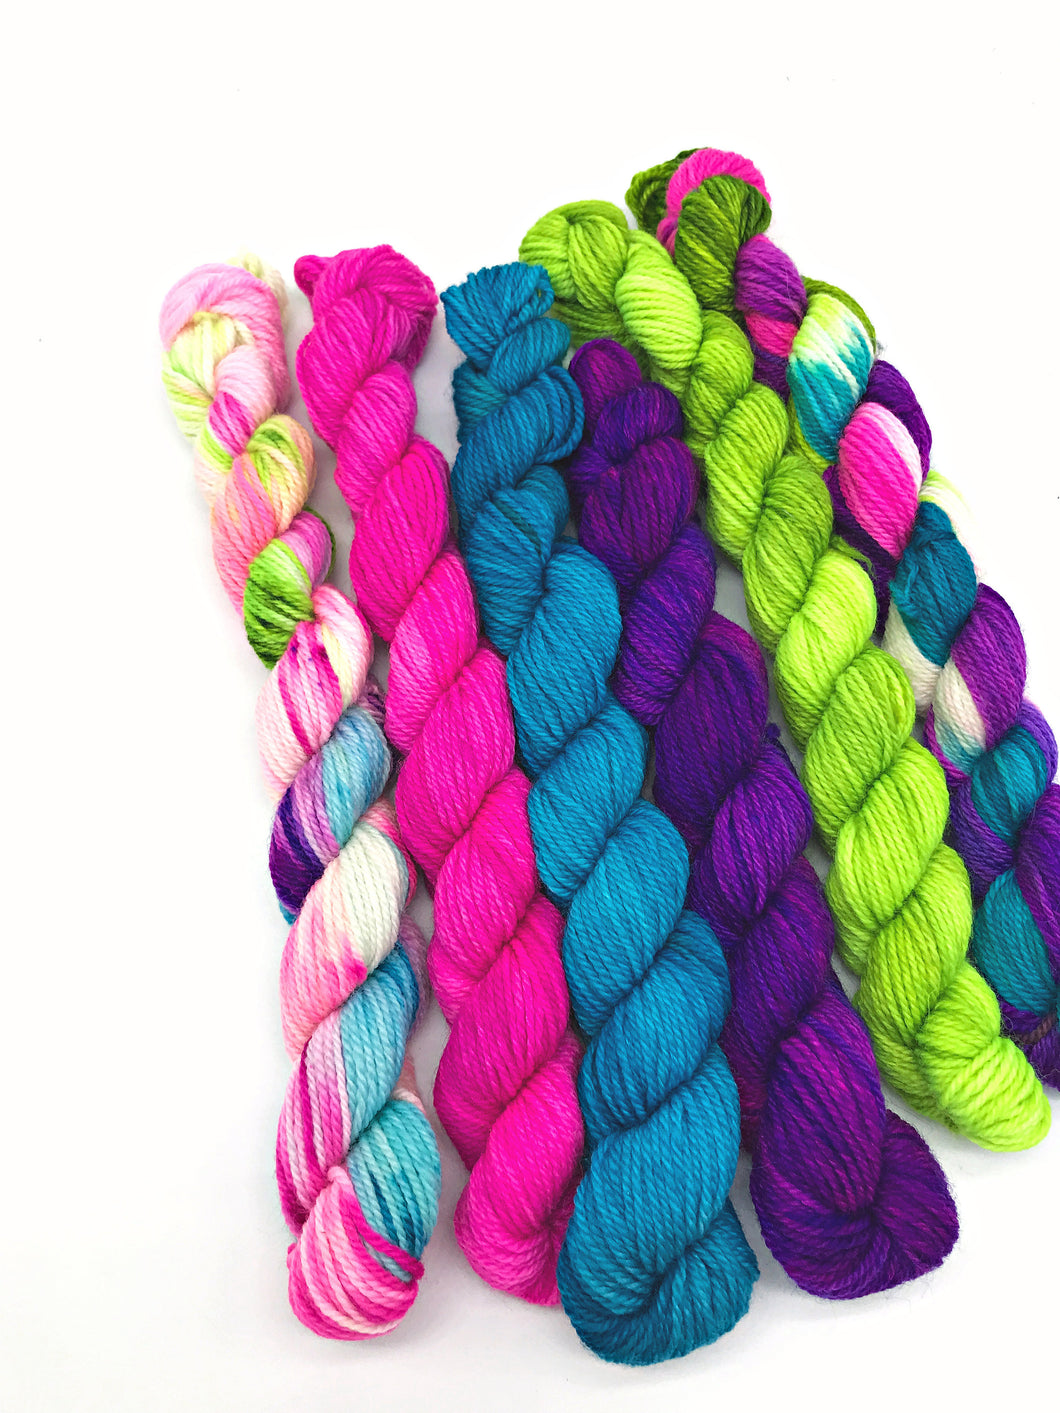 Mini Yarn 6 Pack - I'm losing my mind - Fingering 80/20 Merino and Nylon - For knitting, crochet and other fibre arts